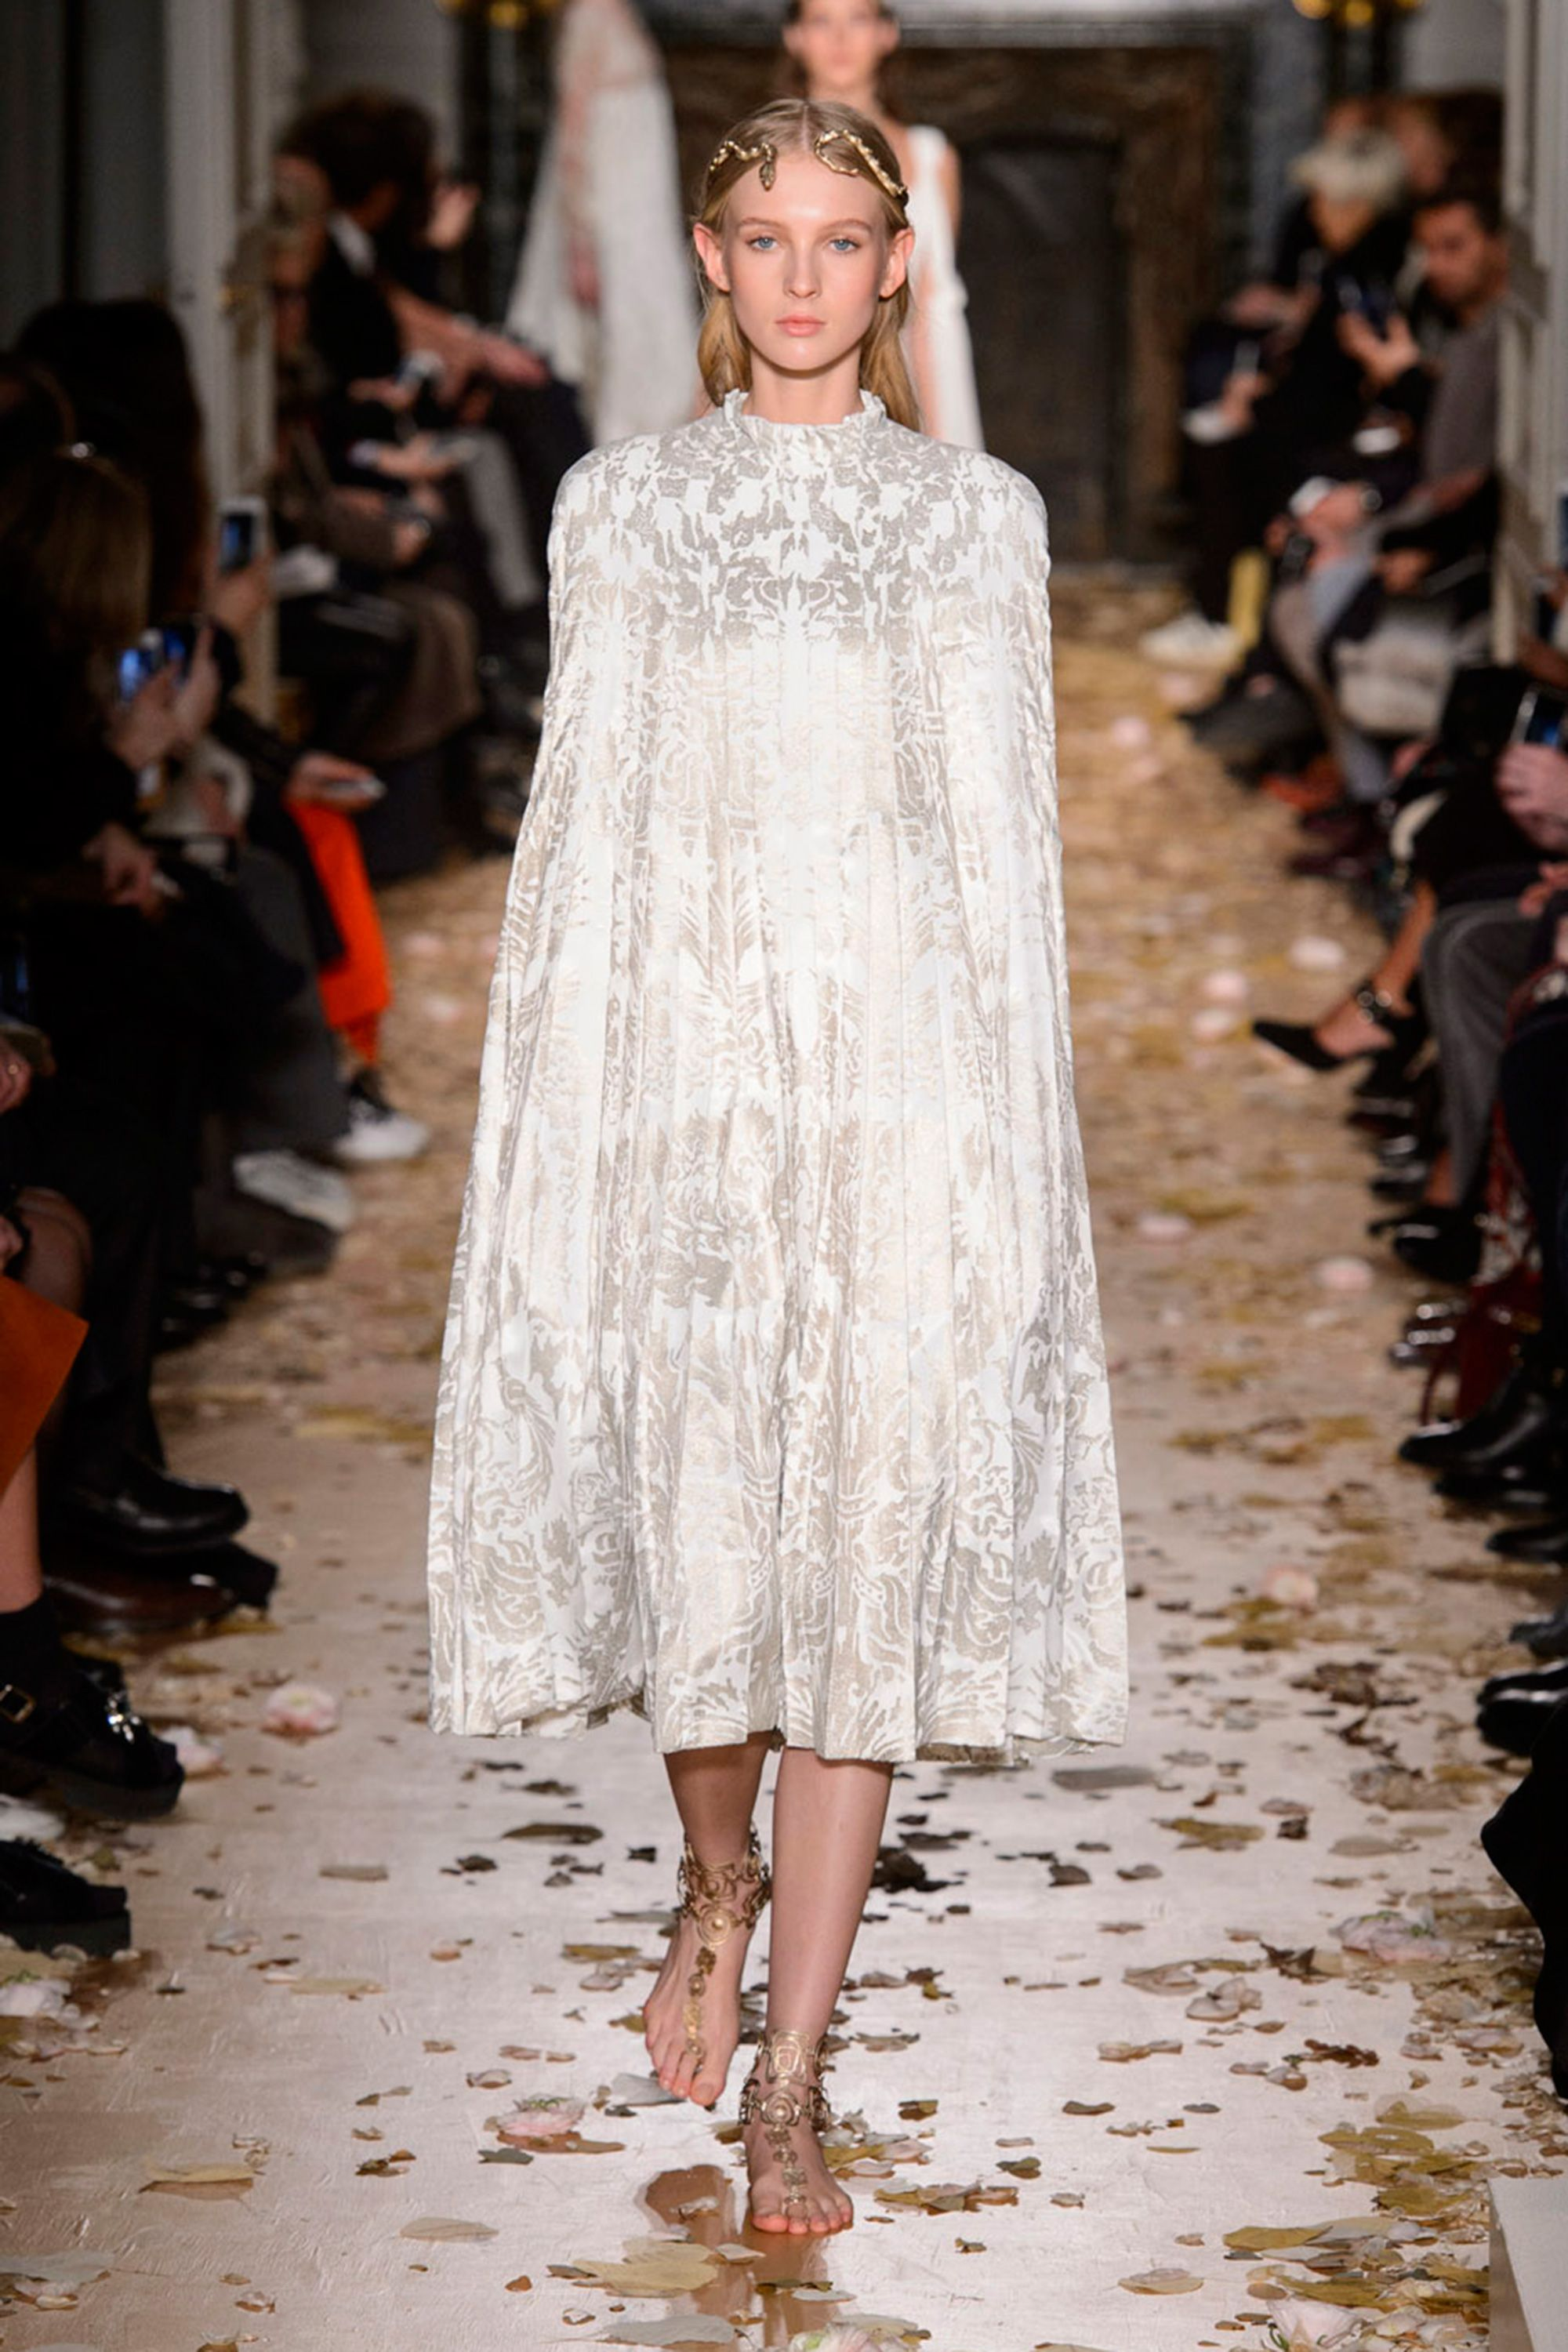 Wedding dress inspiration from the couture catwalks the oujays